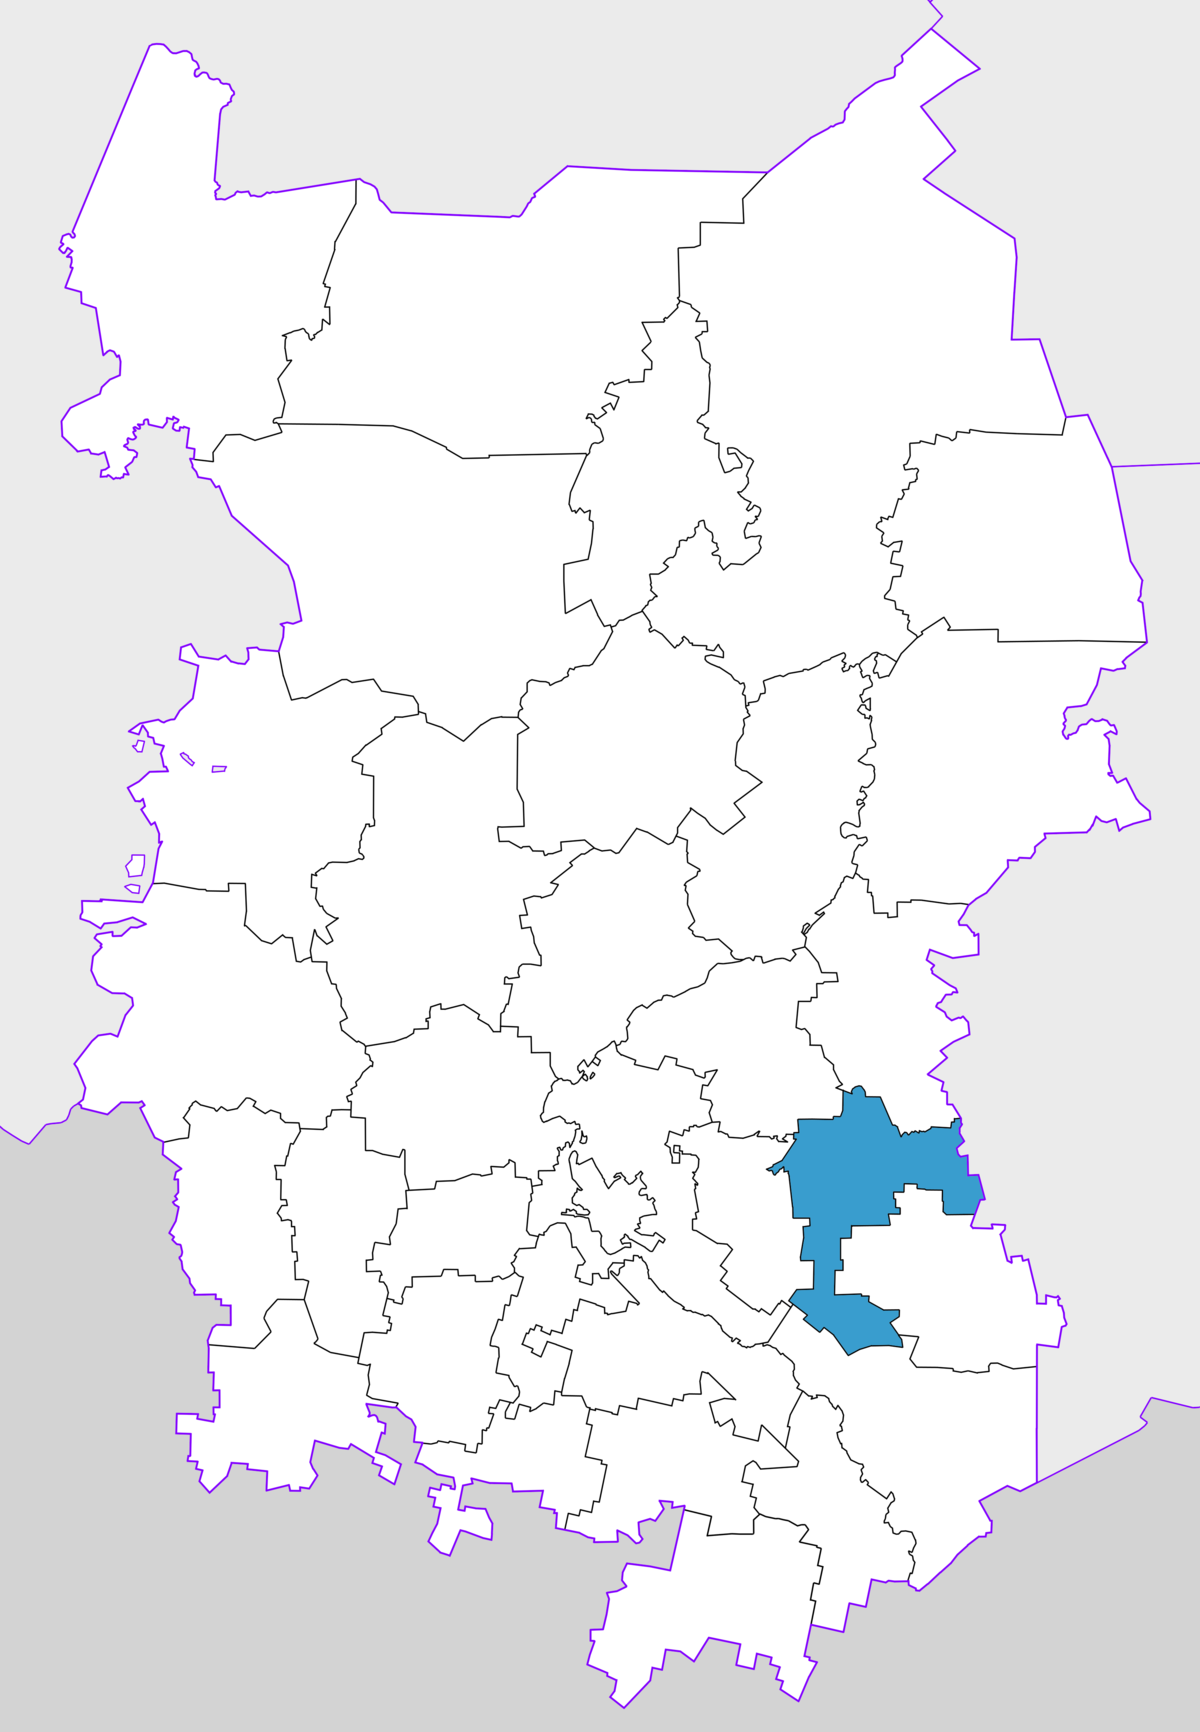 What is the federal district of Omsk, and where is it located 50